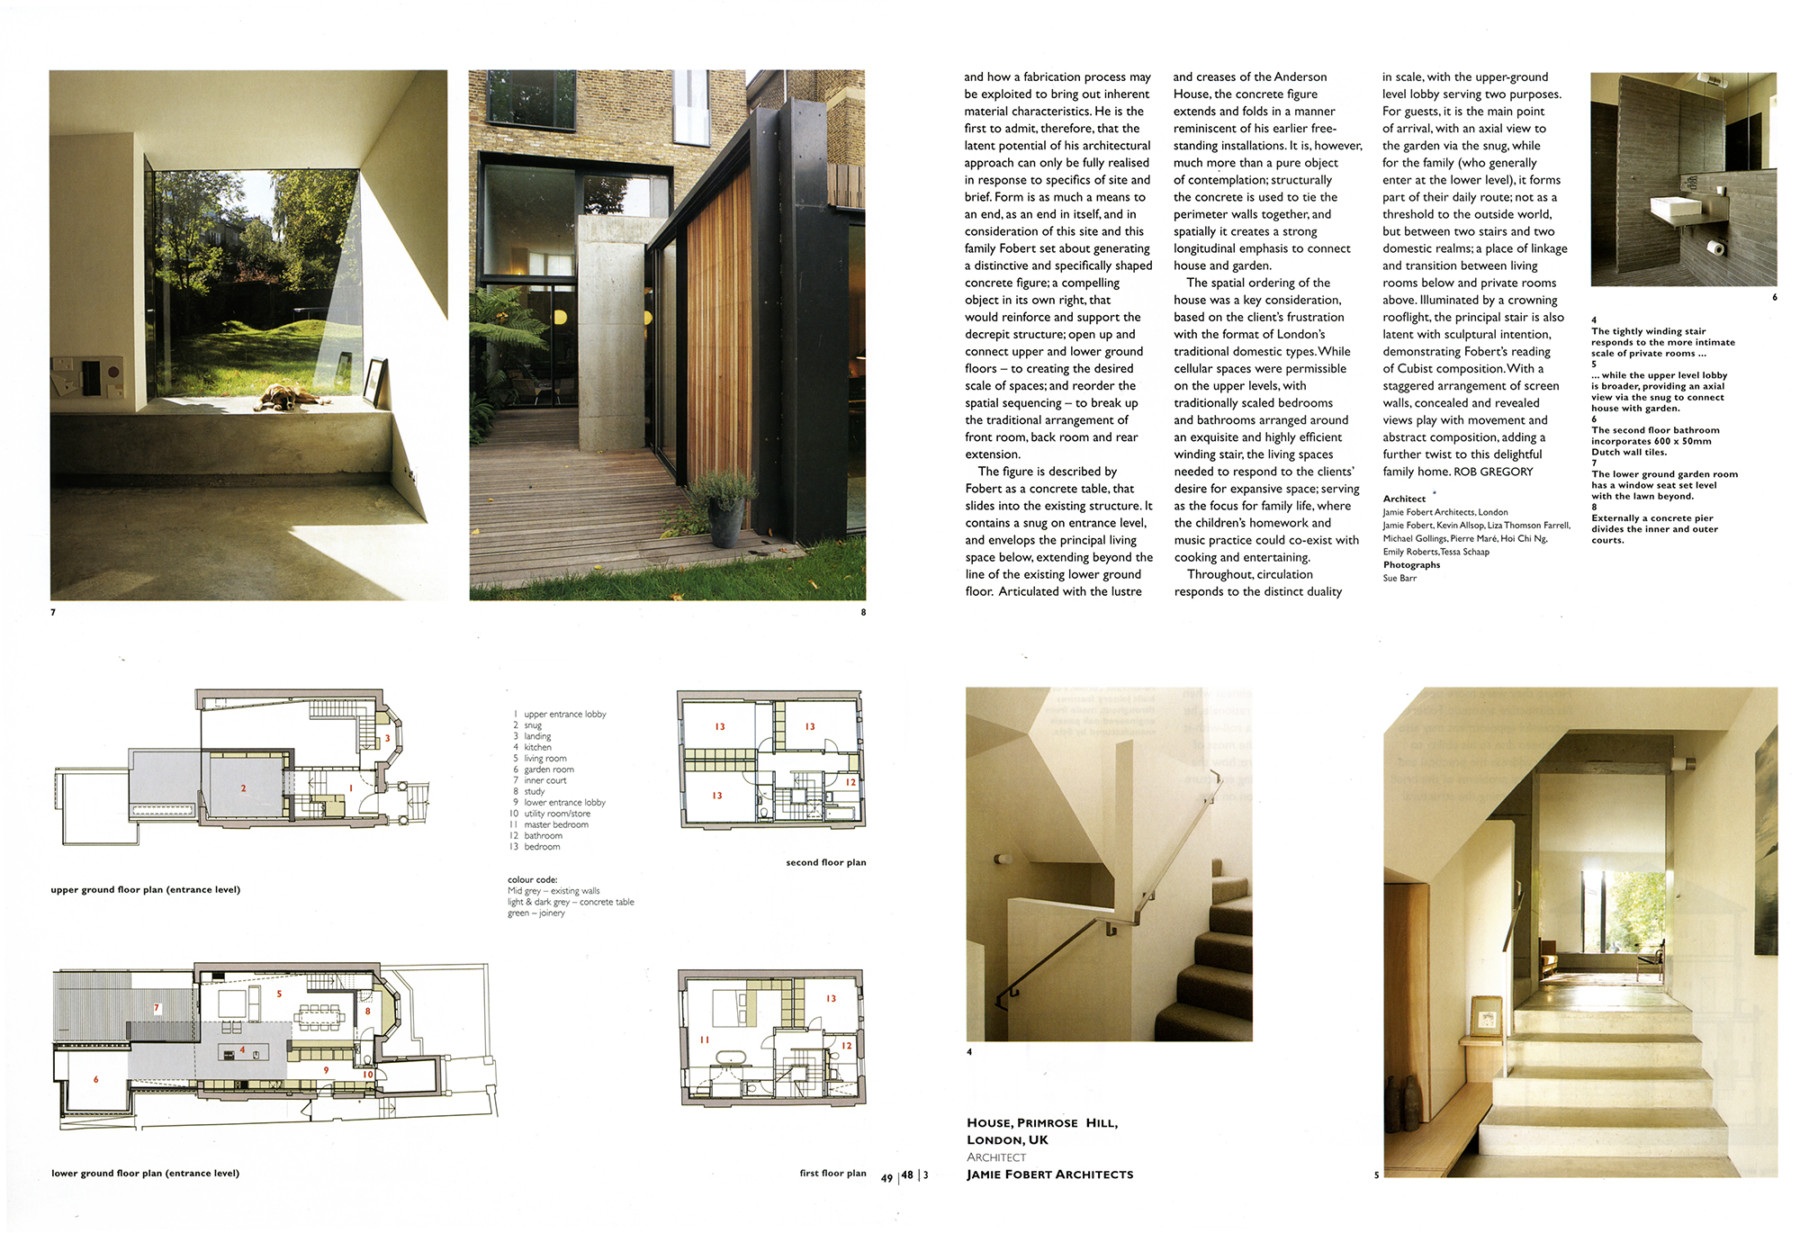 Jamie-Fobert-Architects-Kander-House-Inner-Realm-Article-page2